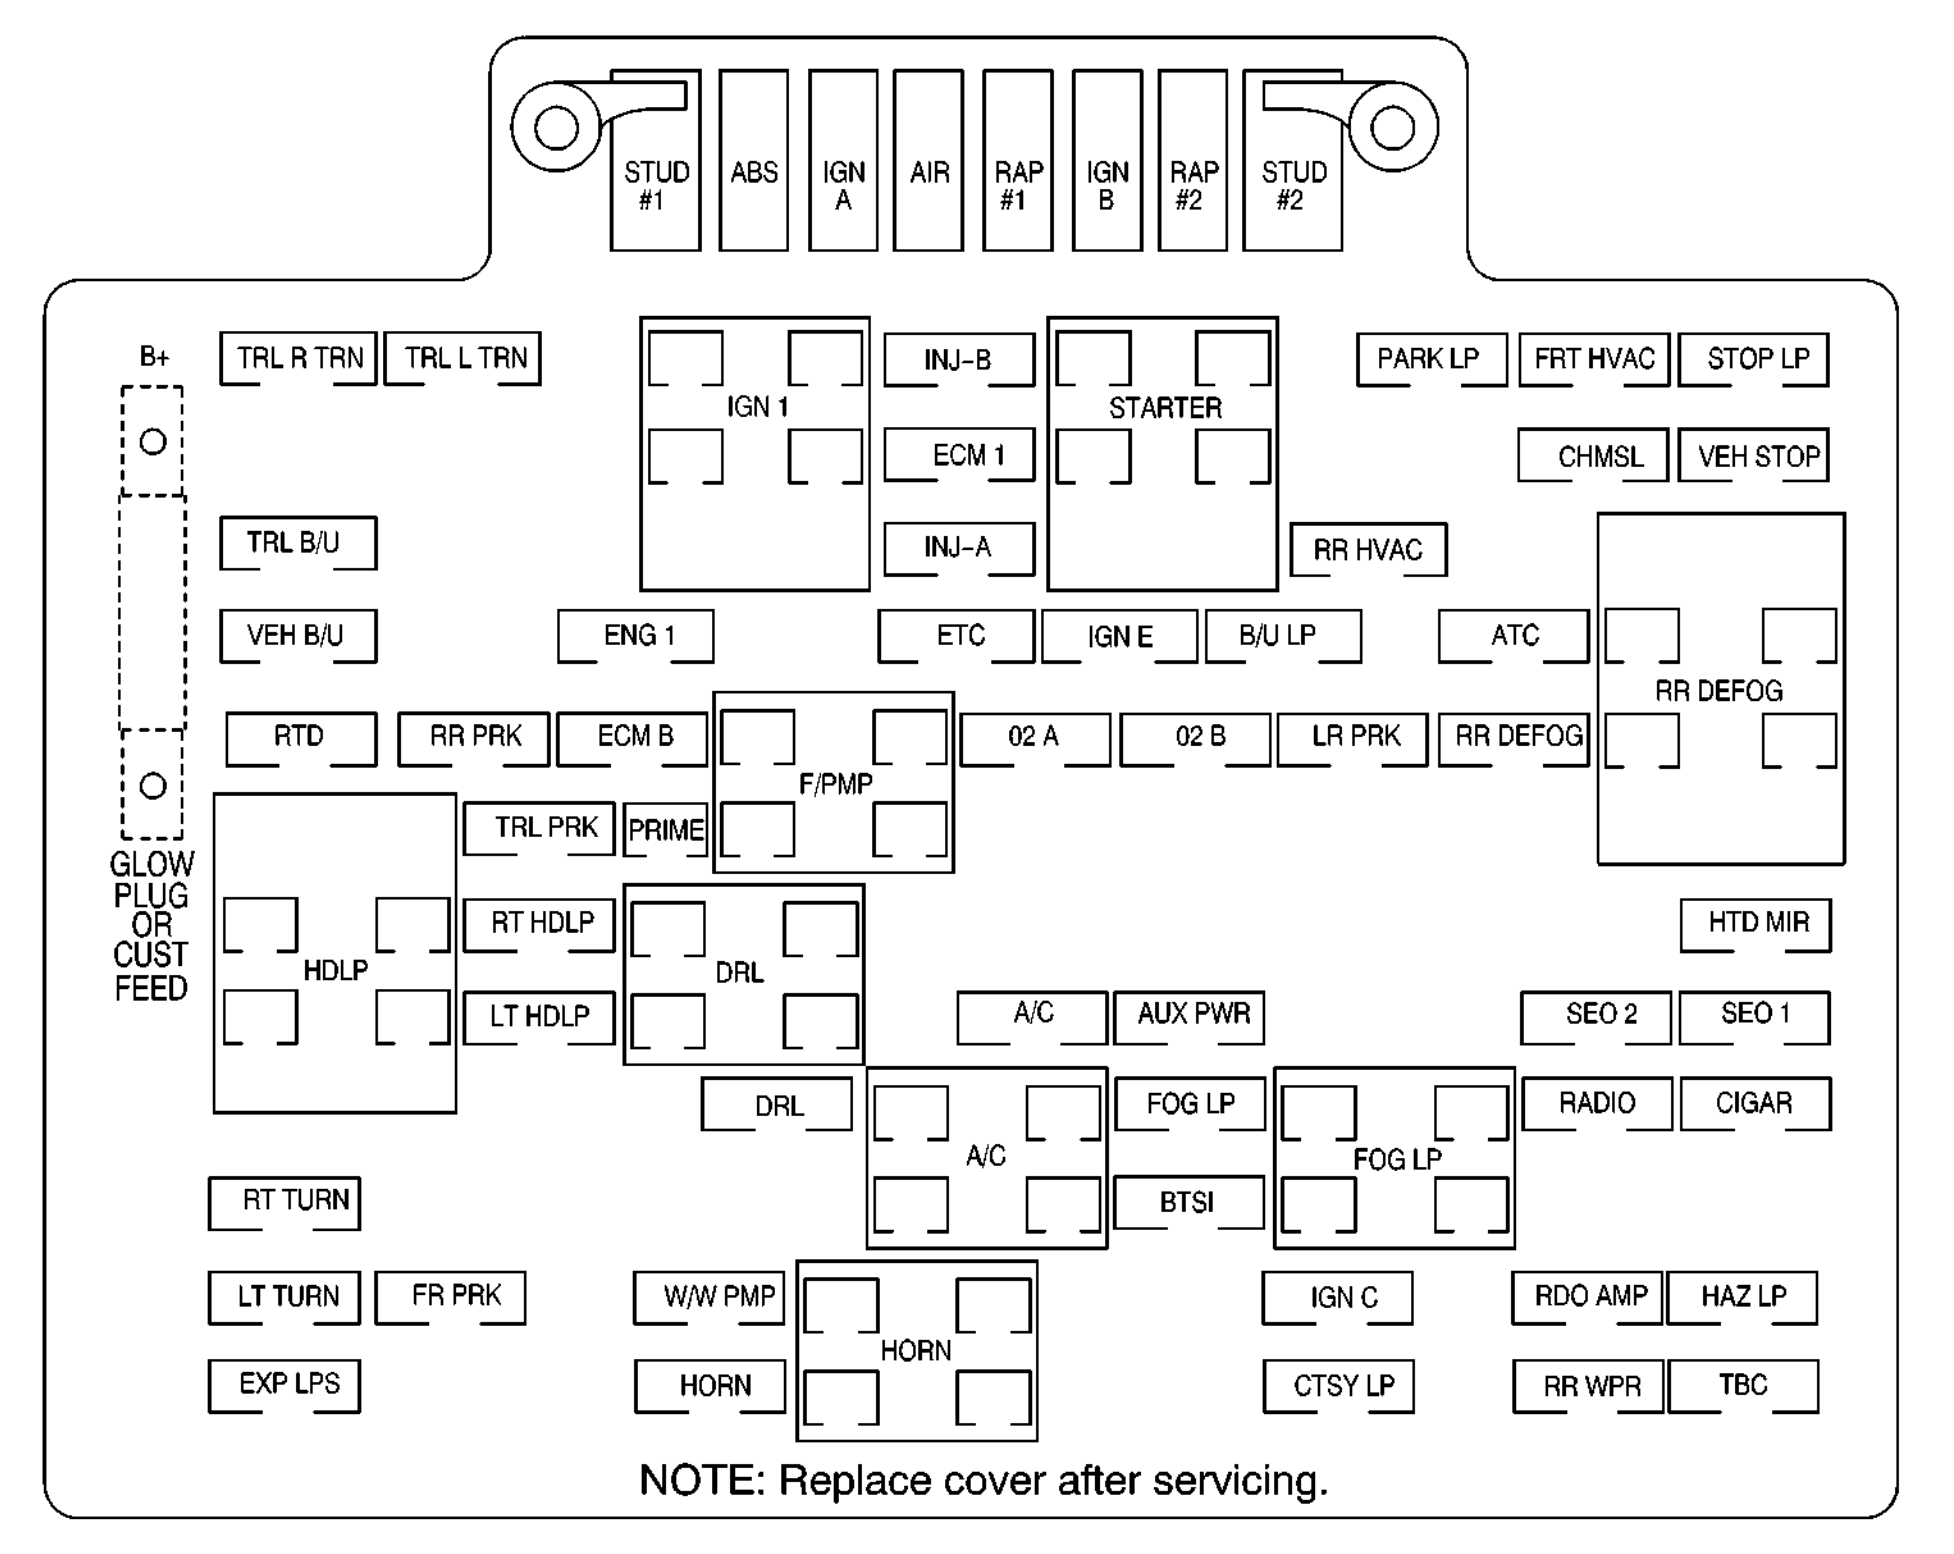 Fuse Box Connection : Chevrolet tahoe fuse box diagram carknowledge